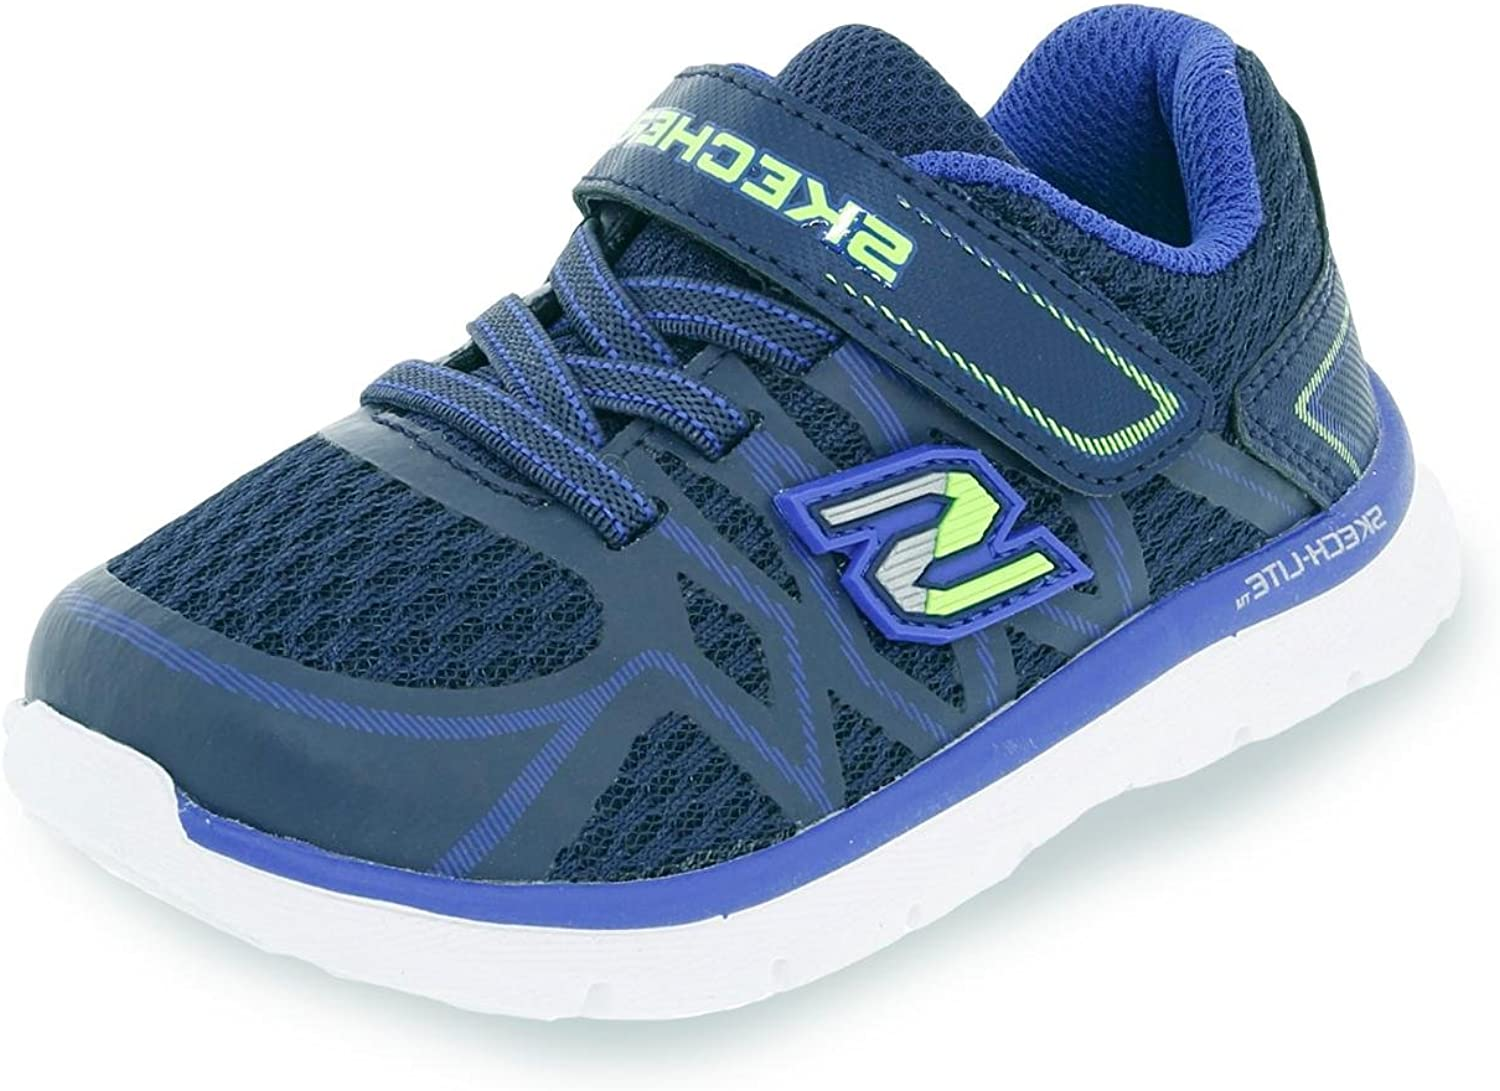 Skechers Childrens Boys Skech-Lite Quick Leap Sneakers